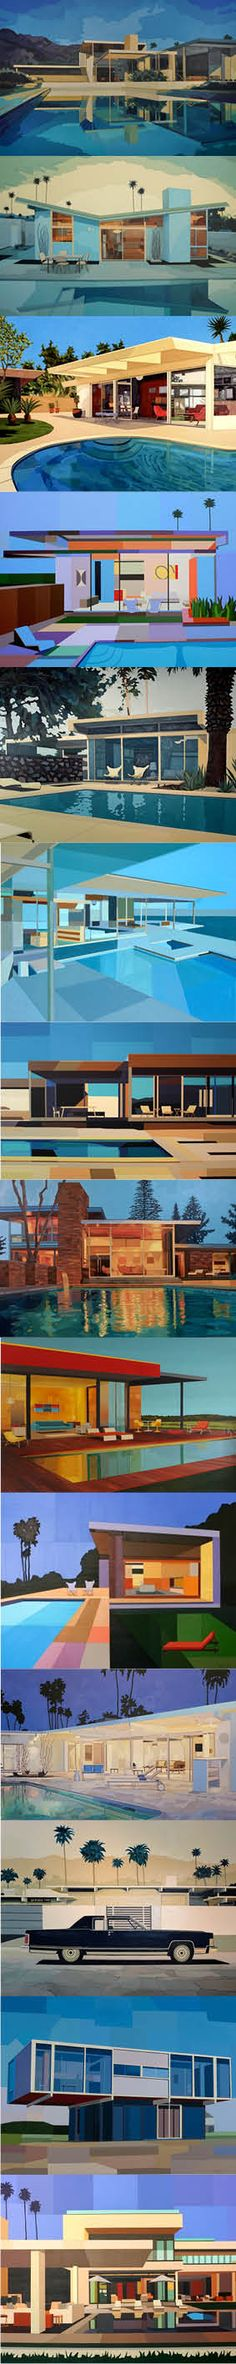 Andy Burgess - Modernist Houses / mid-century modern